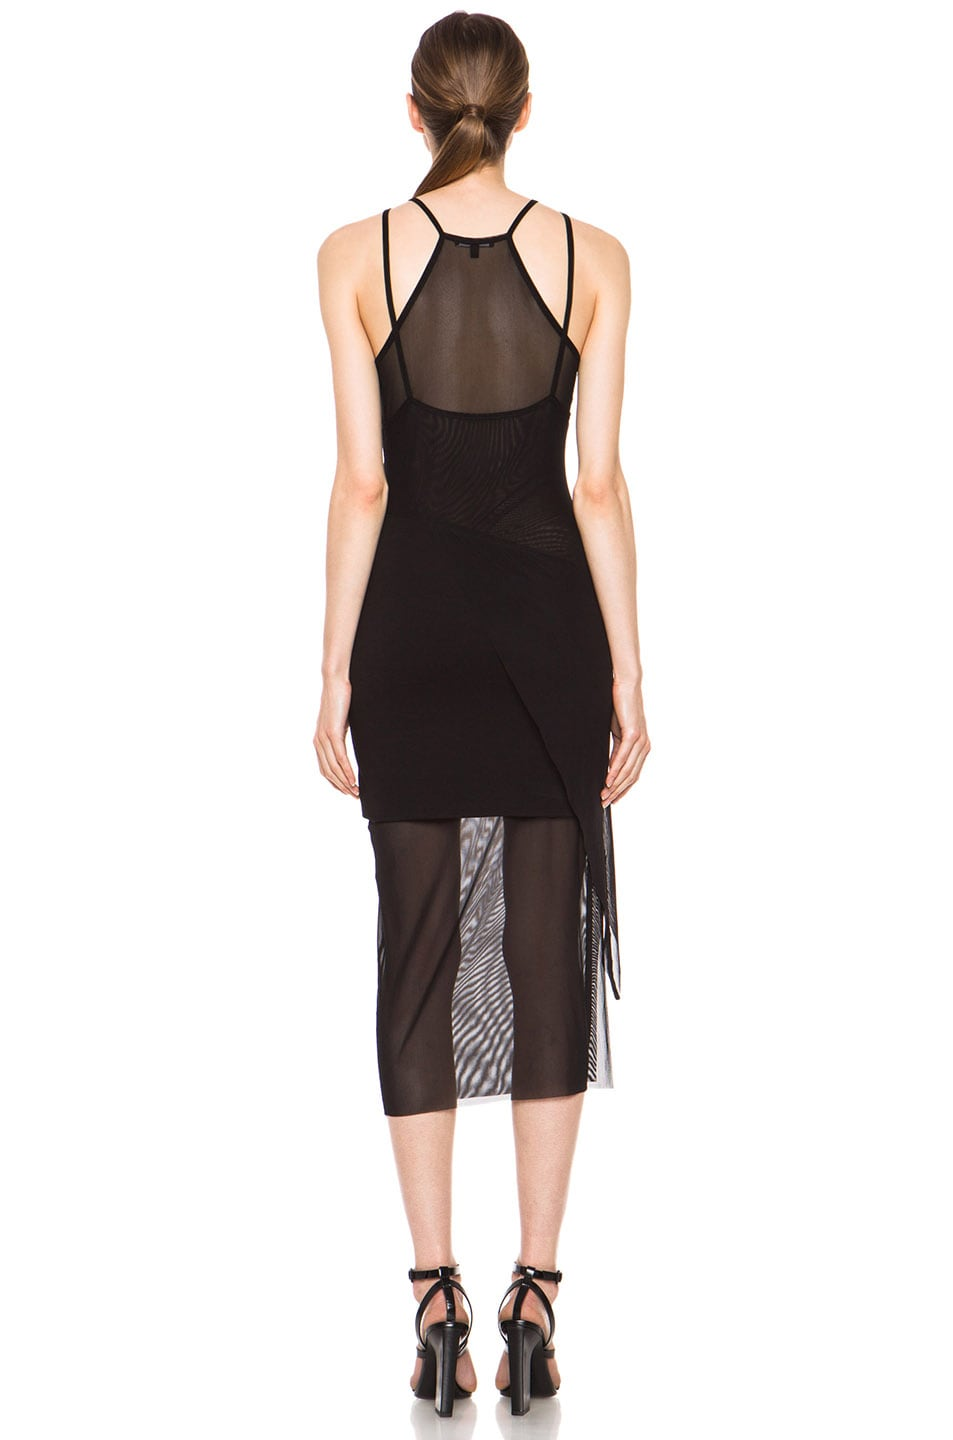 Image 4 of Kimberly Ovitz Kimek Polyamide-Blend Dress in Black